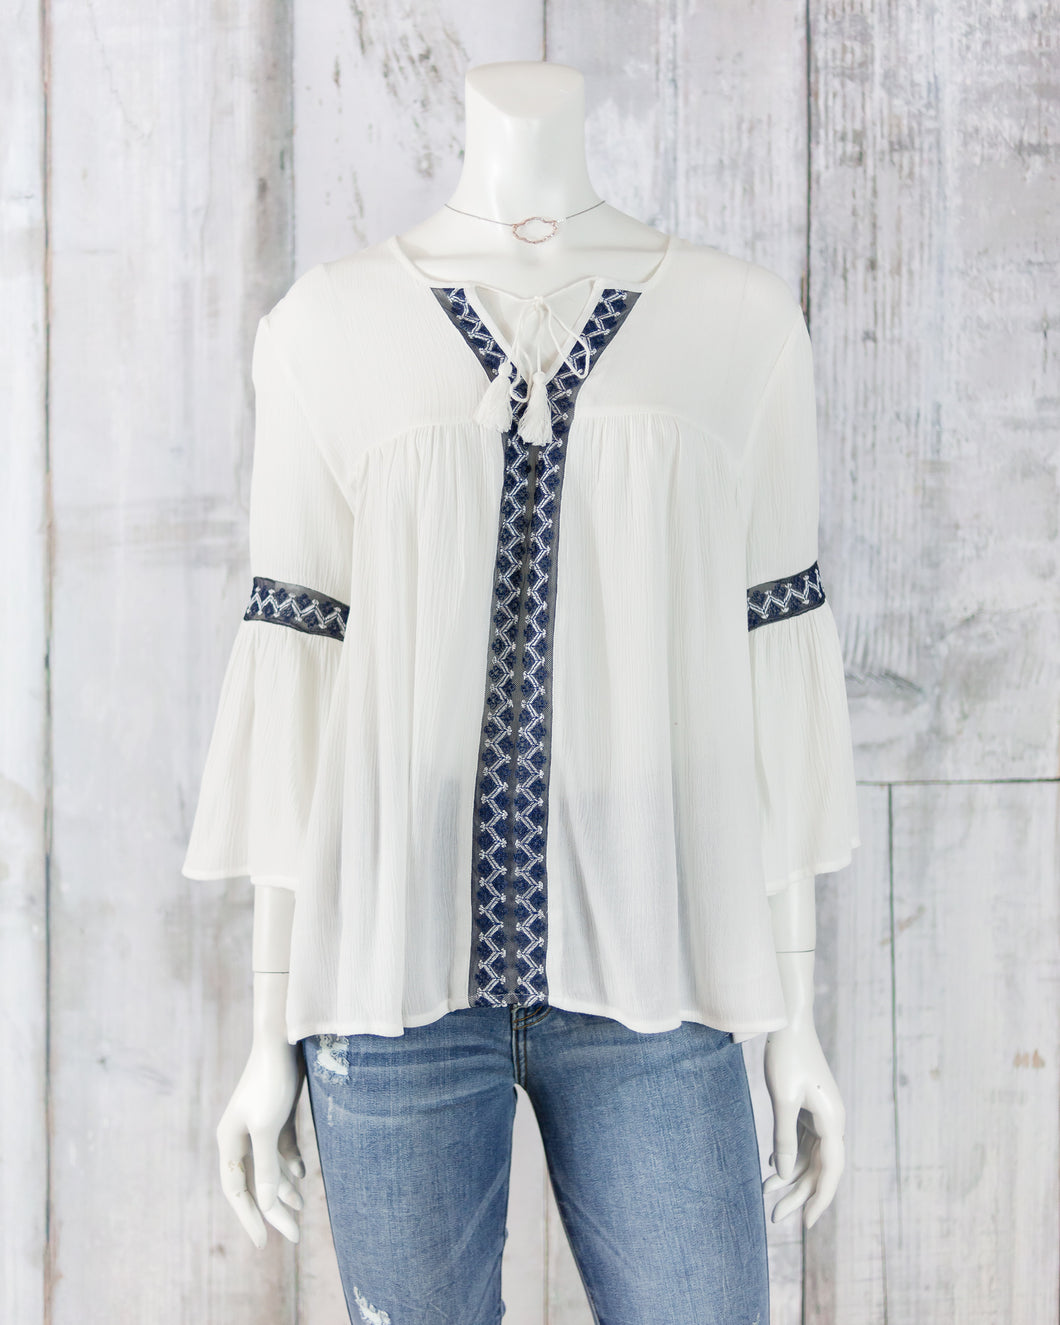 Bell Slv Embroidered Tie at Neck Peasant Top LM8036Y35